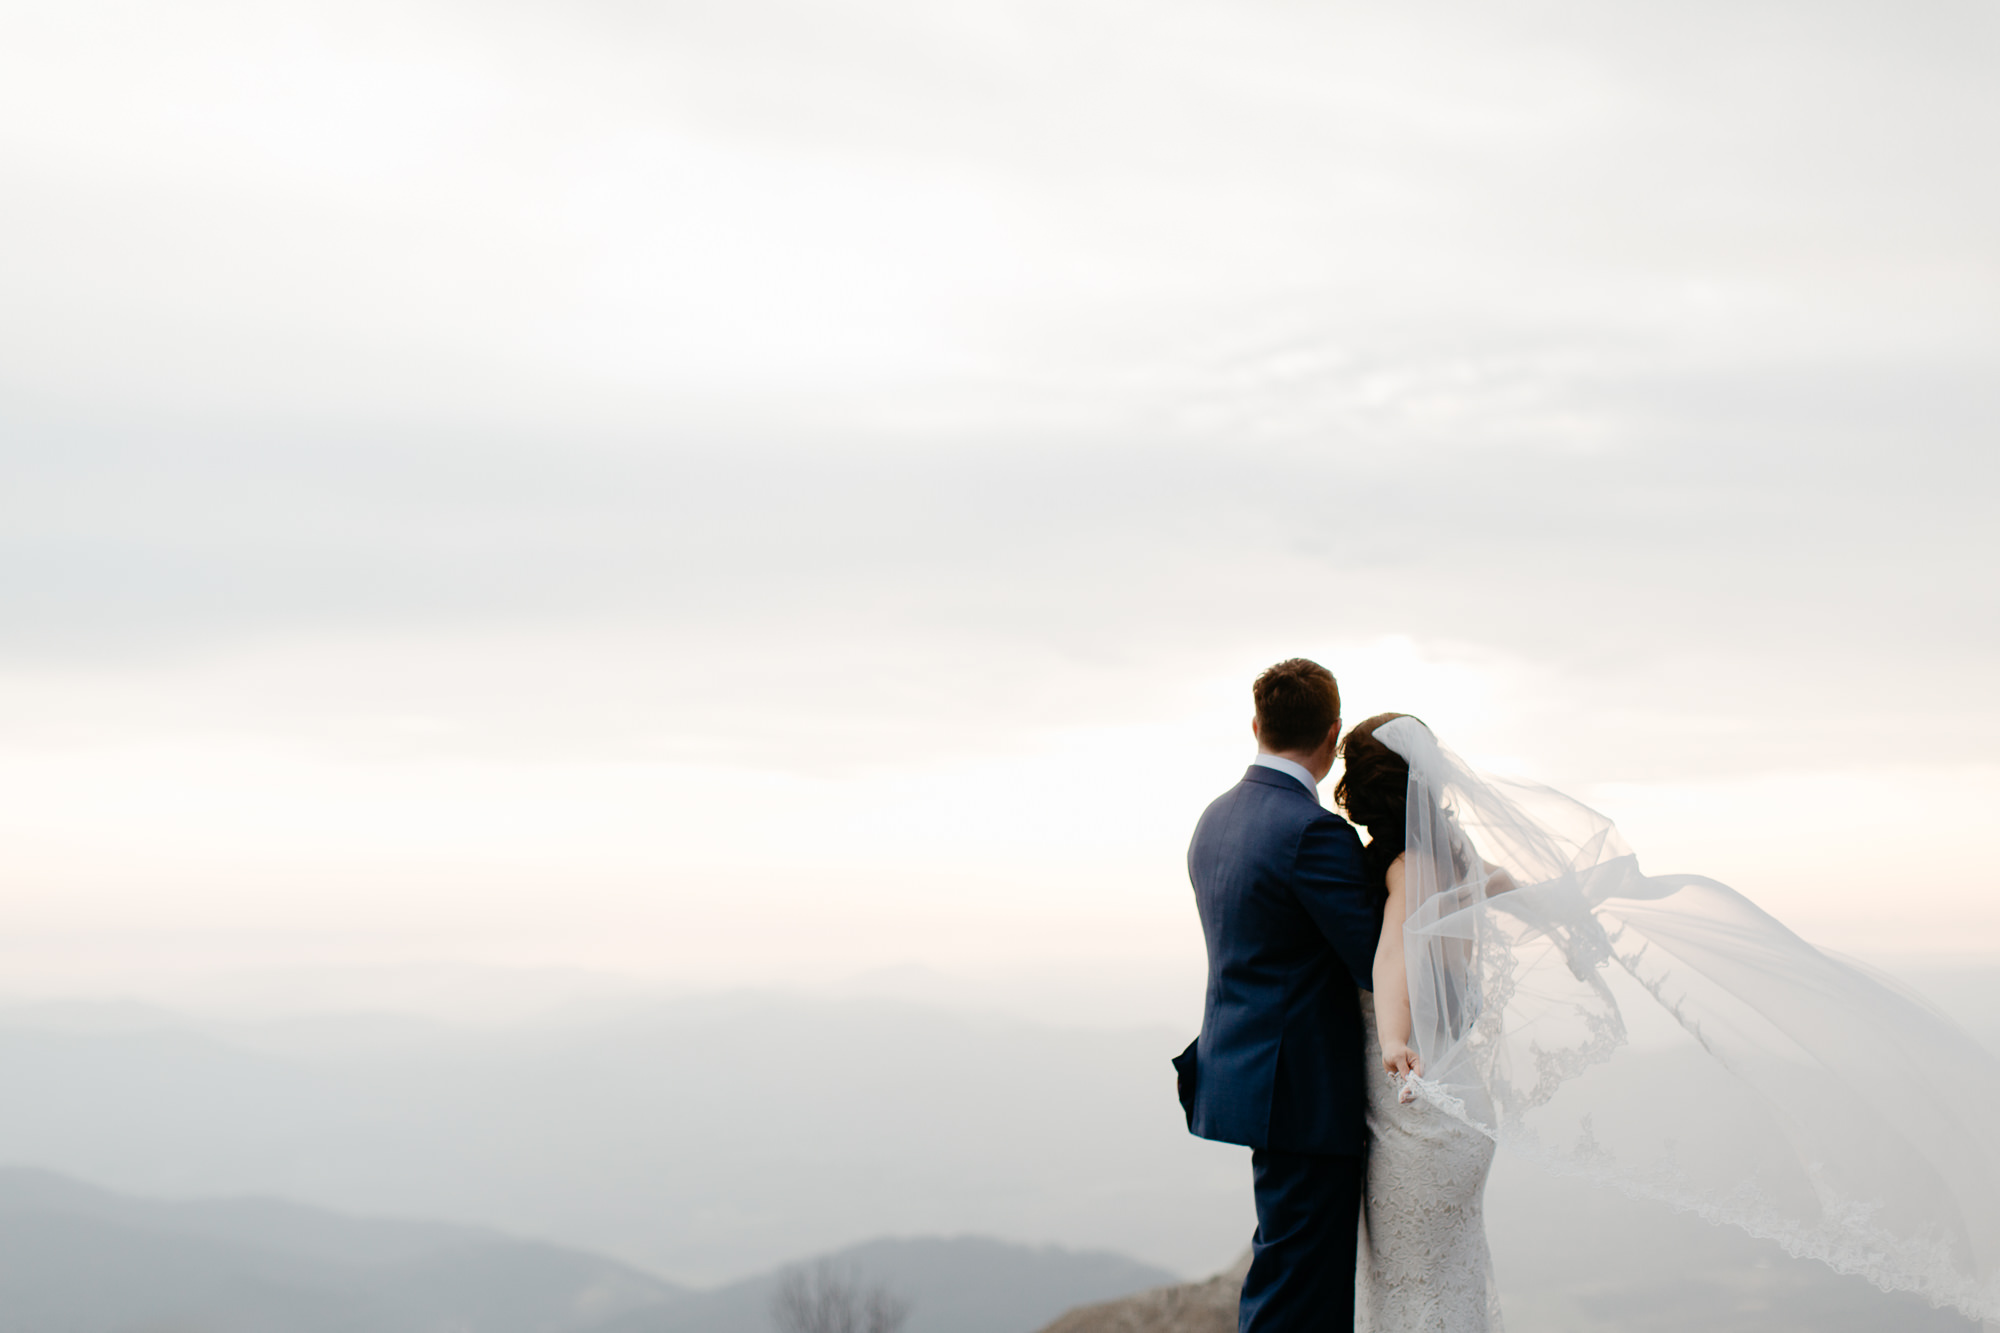 Peaks-of-Otter-Virginia-Of-Fate-and-Chaos-Elopement-Sharp-Top-48.jpg